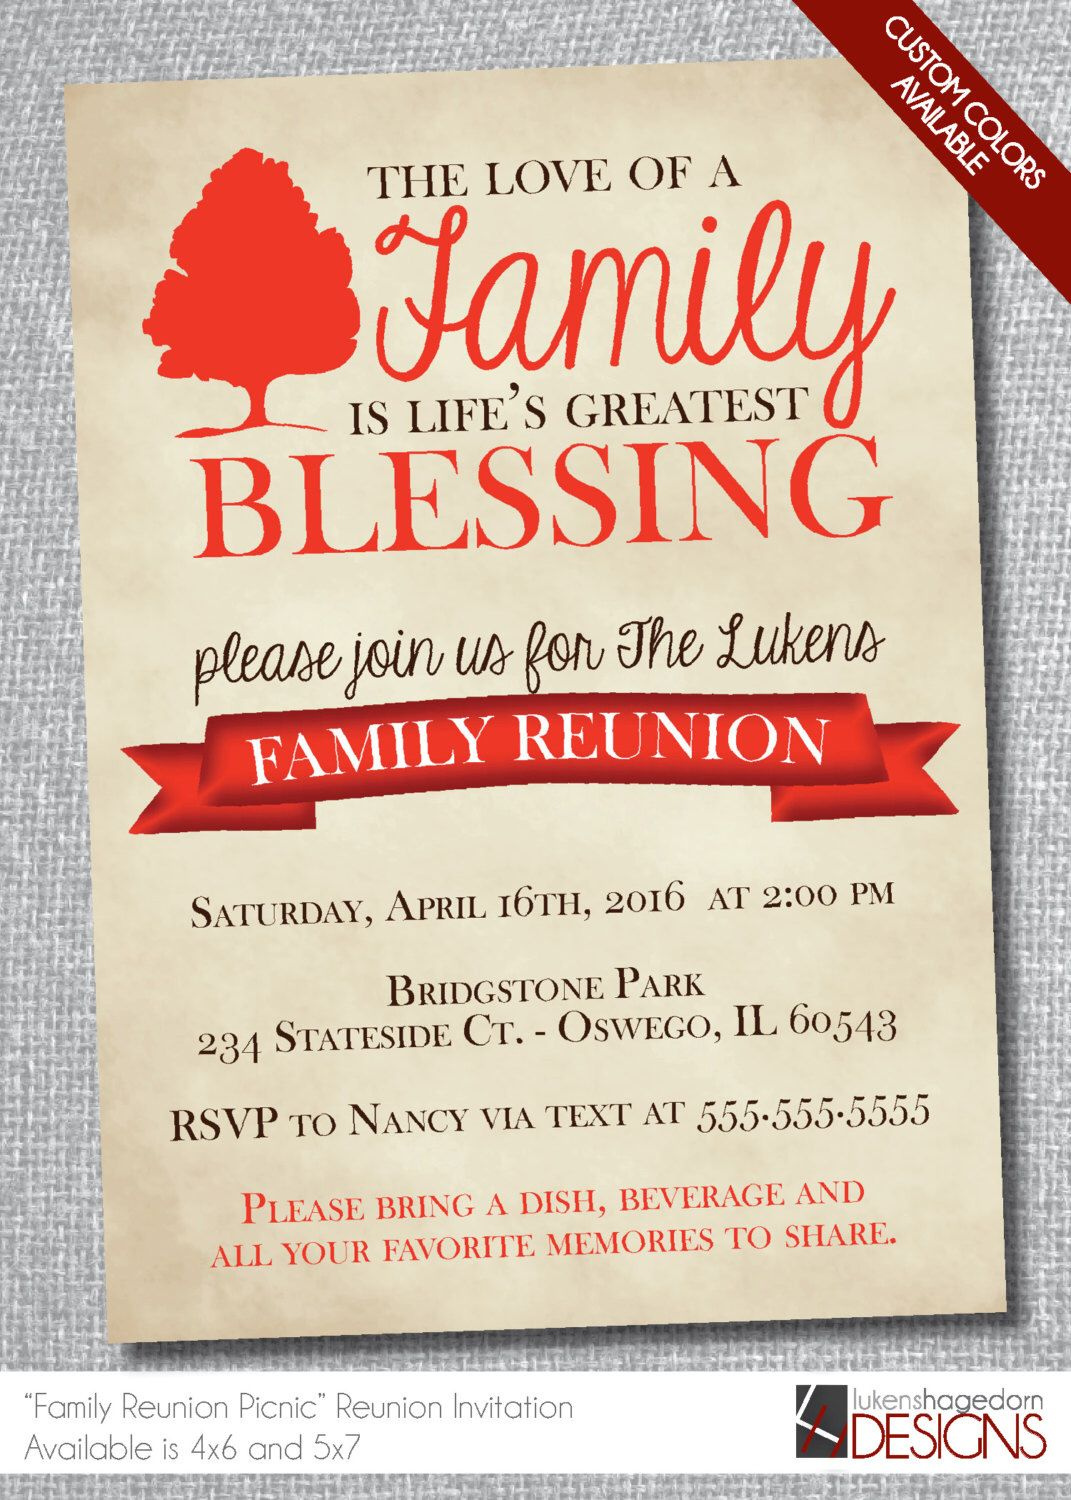 Wanted Family Reunion Invitations Easy to customize – Family Reunion Invitation Cards